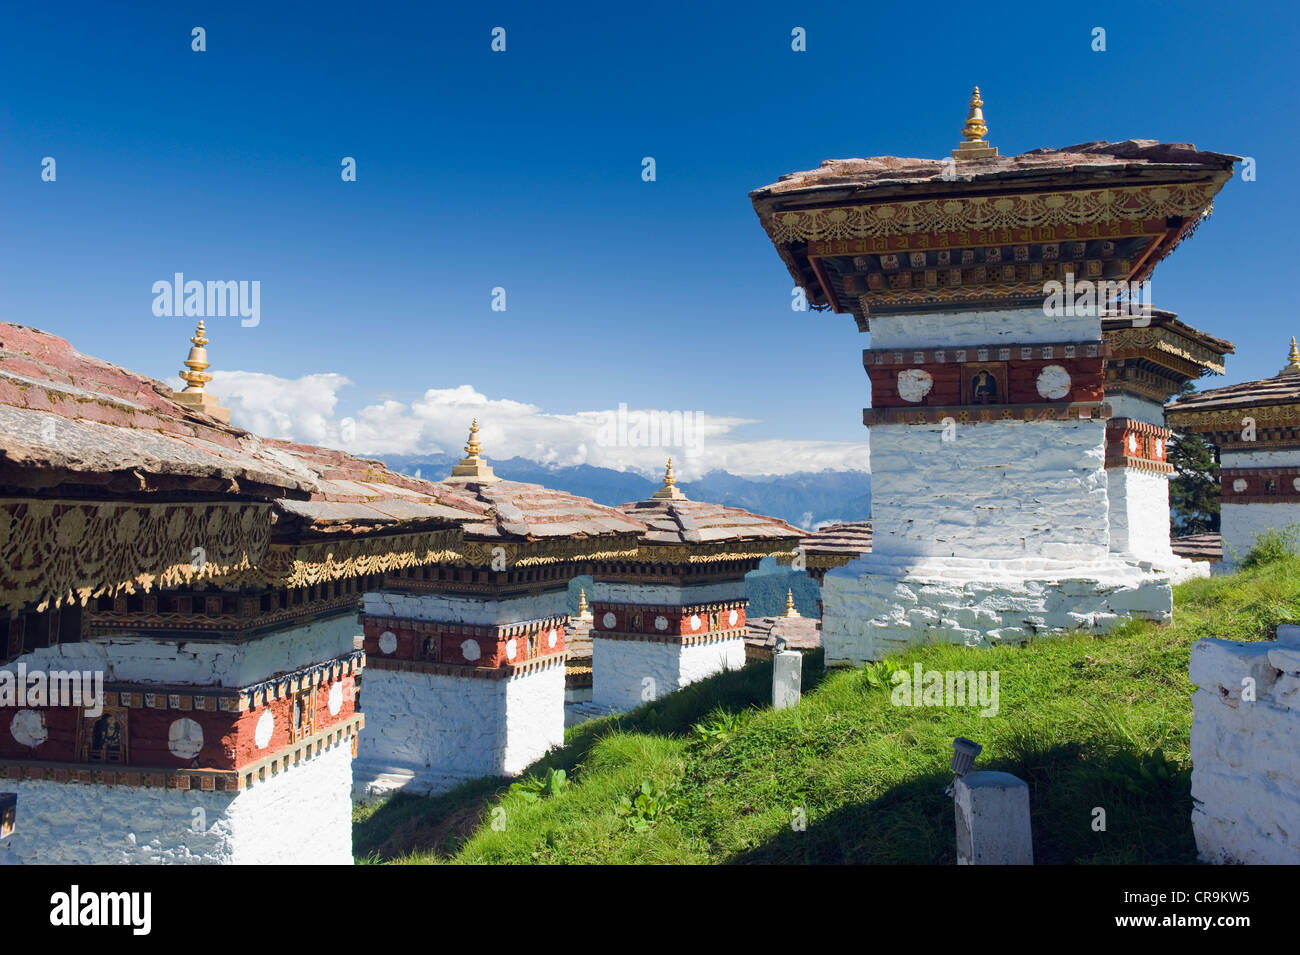 site of 108 chortens built in 2005 to commemorate a battle with militants, Dochu La pass (3140m), Bhutan, Asia - Stock Image